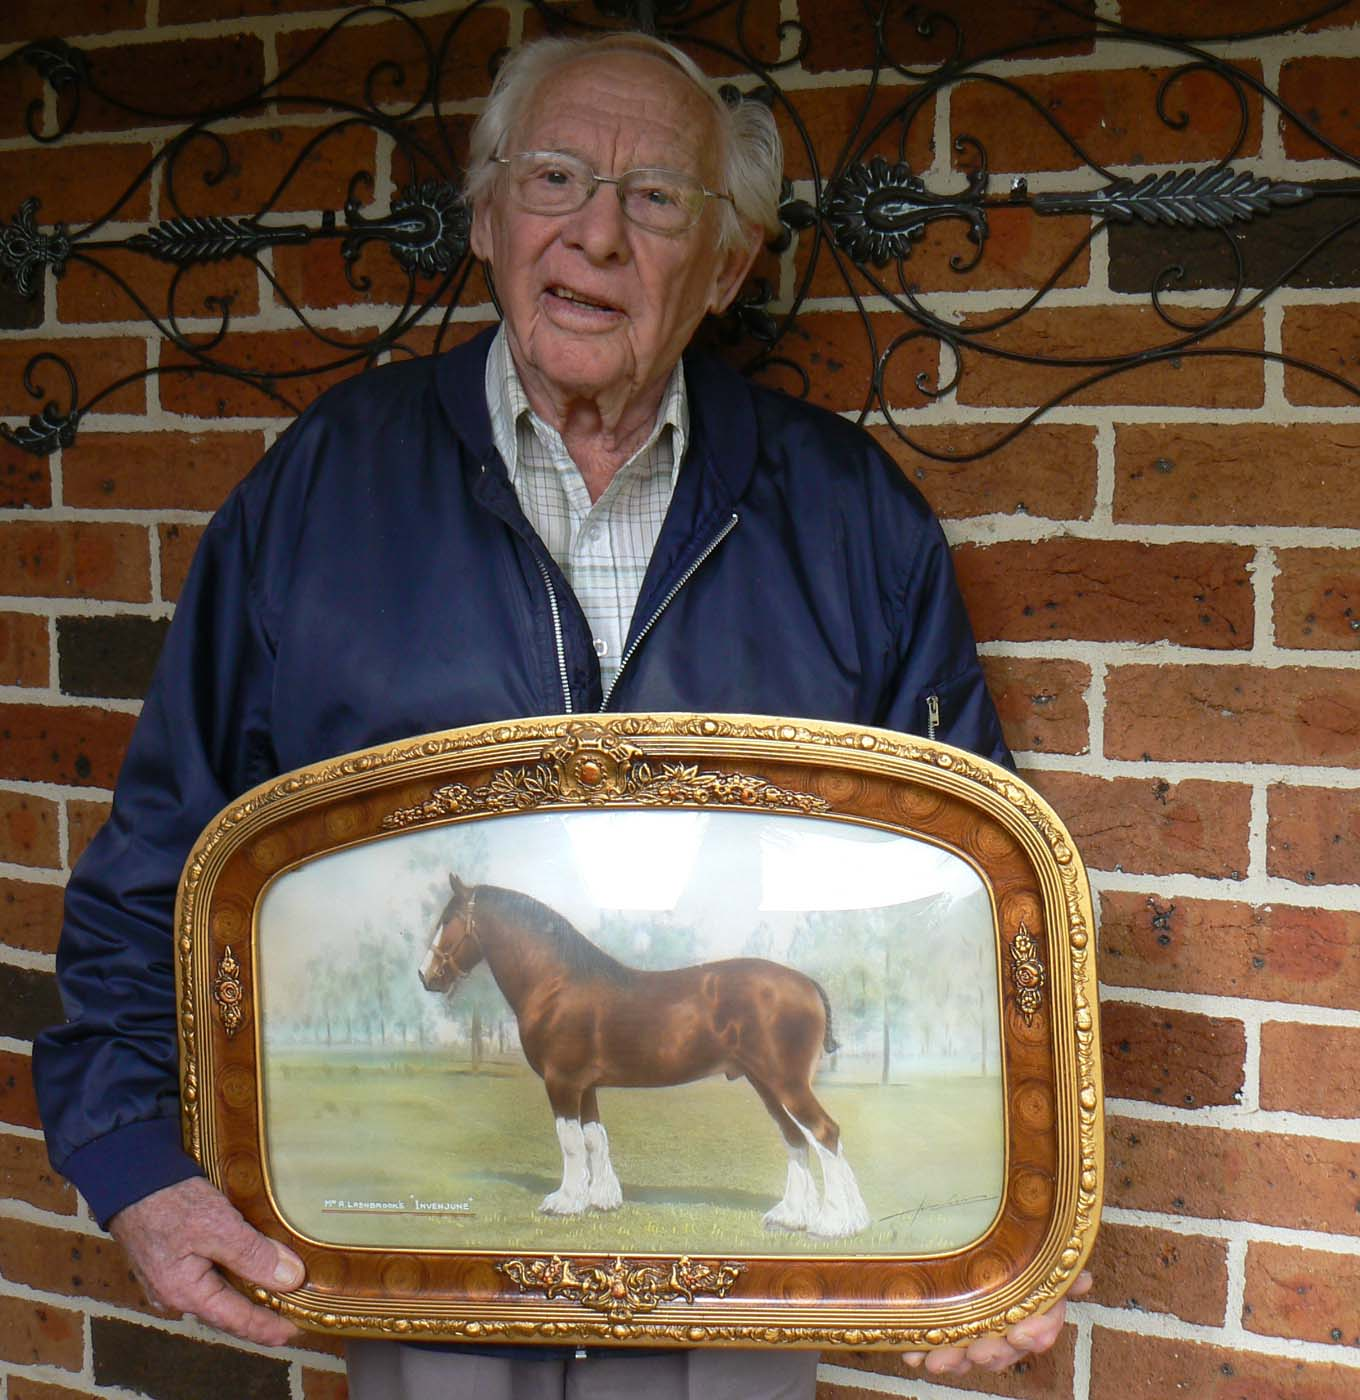 A man holds a framed portrait of a horse. - click to view larger image